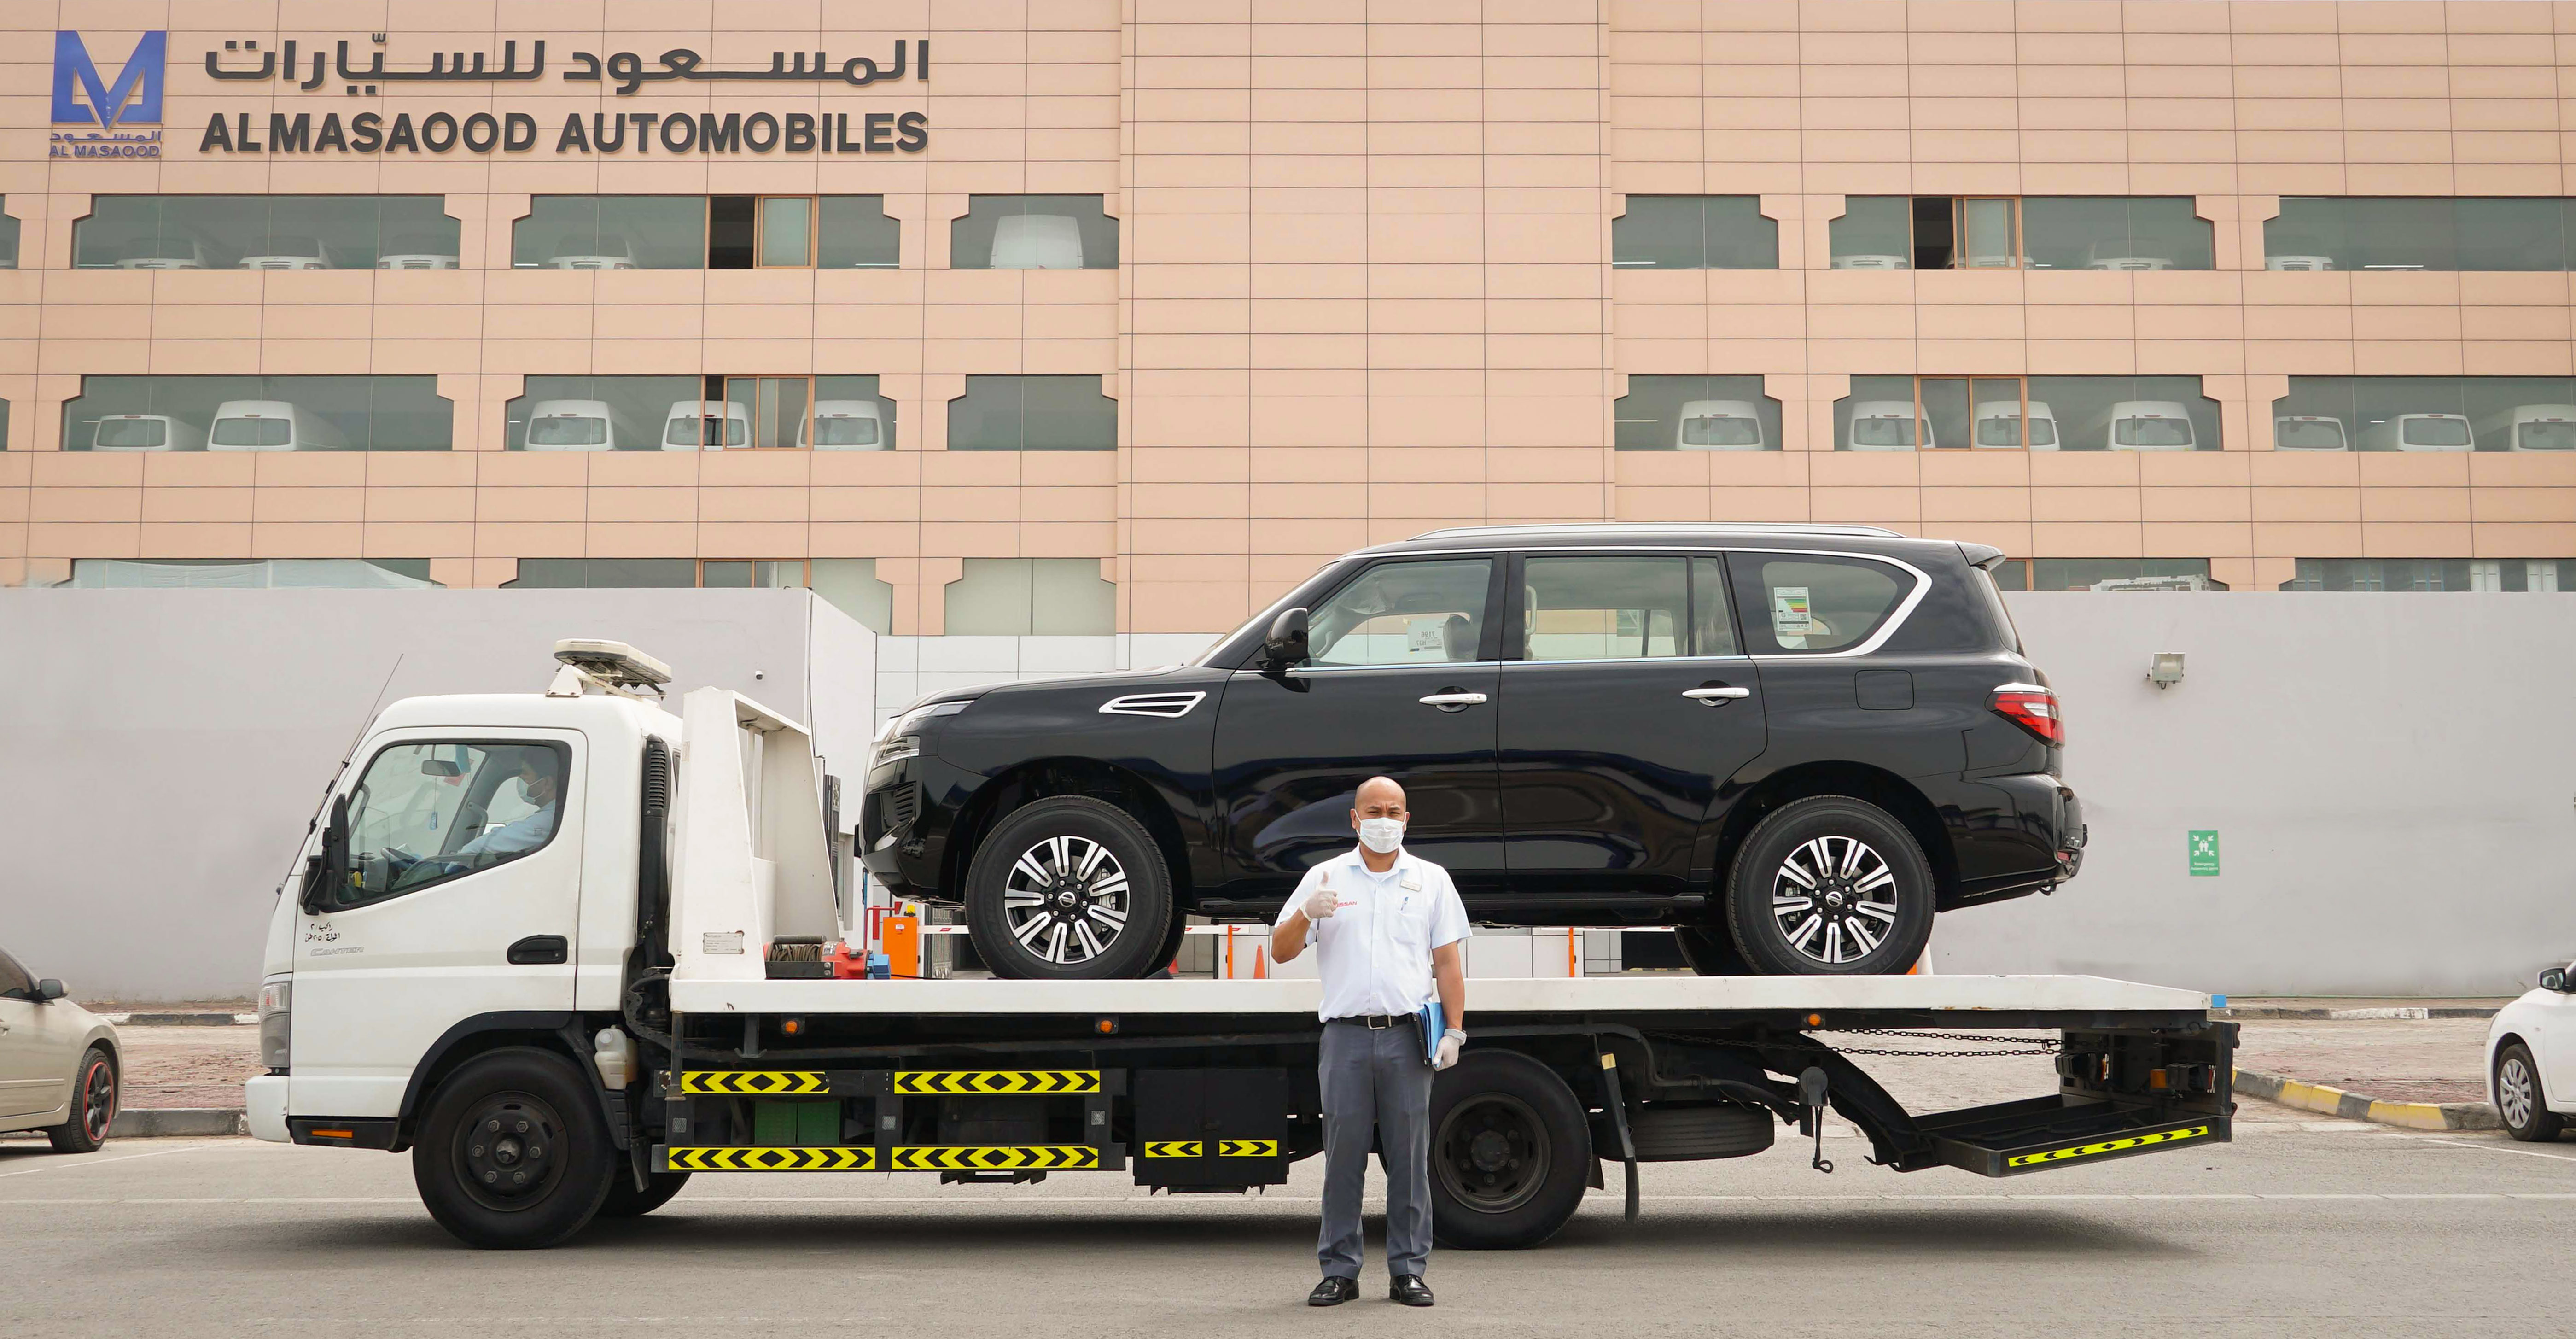 Al Masaood Automobiles provides customer-convenient vehicle pickup and delivery service